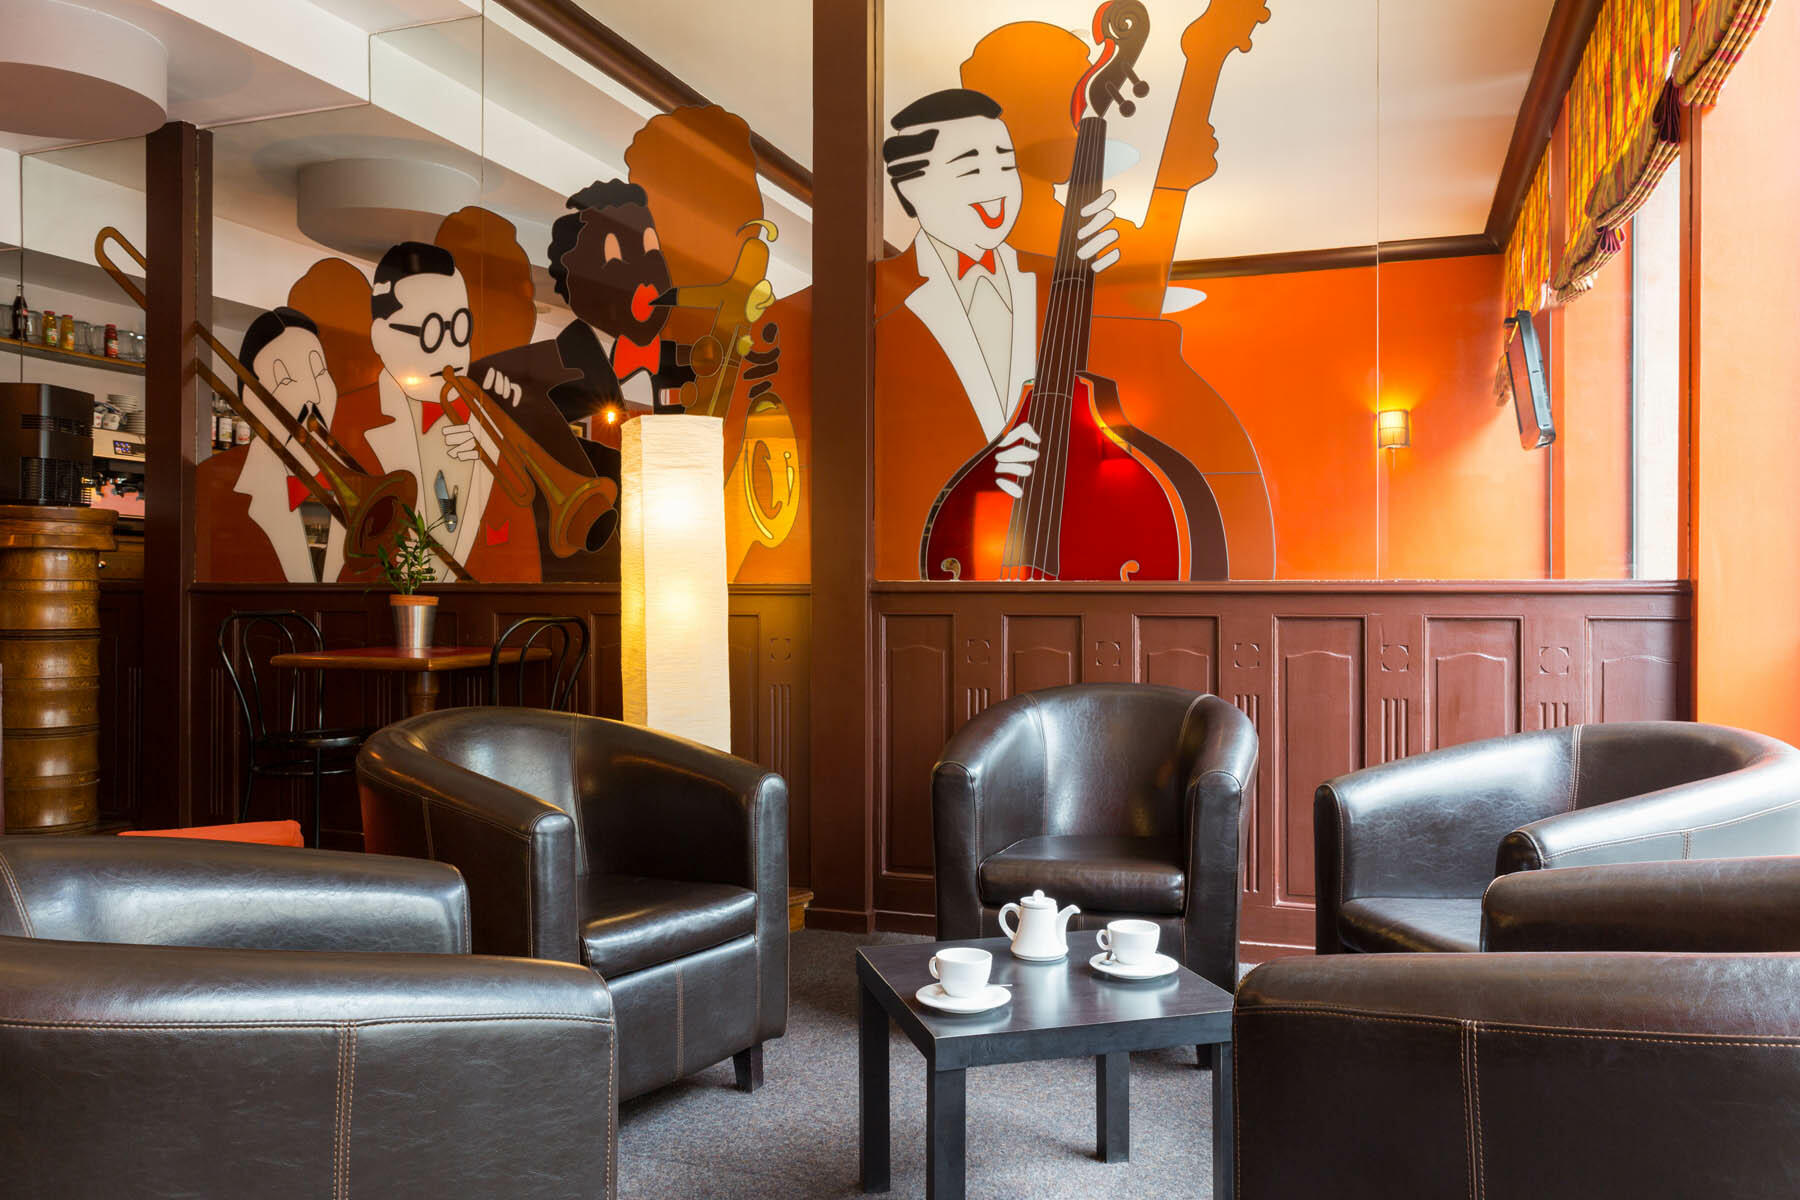 The lounge area at Hotel Bristol with brown leather chairs